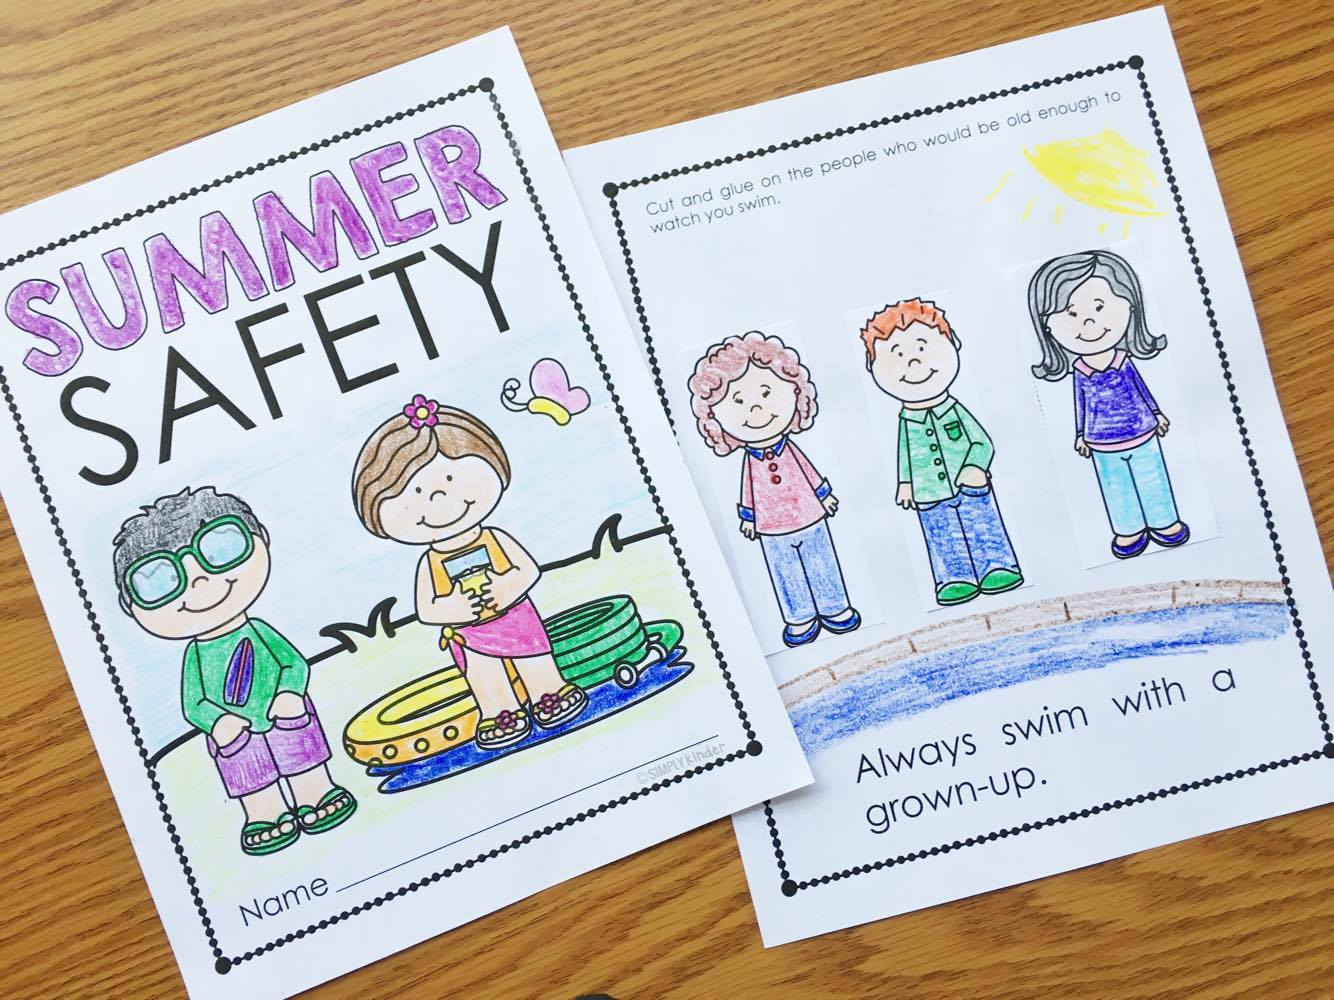 Summer Safety activities from Simply Kinder. Talk about pool safety, staying healthy, and every other random topic that will keep kids safe!